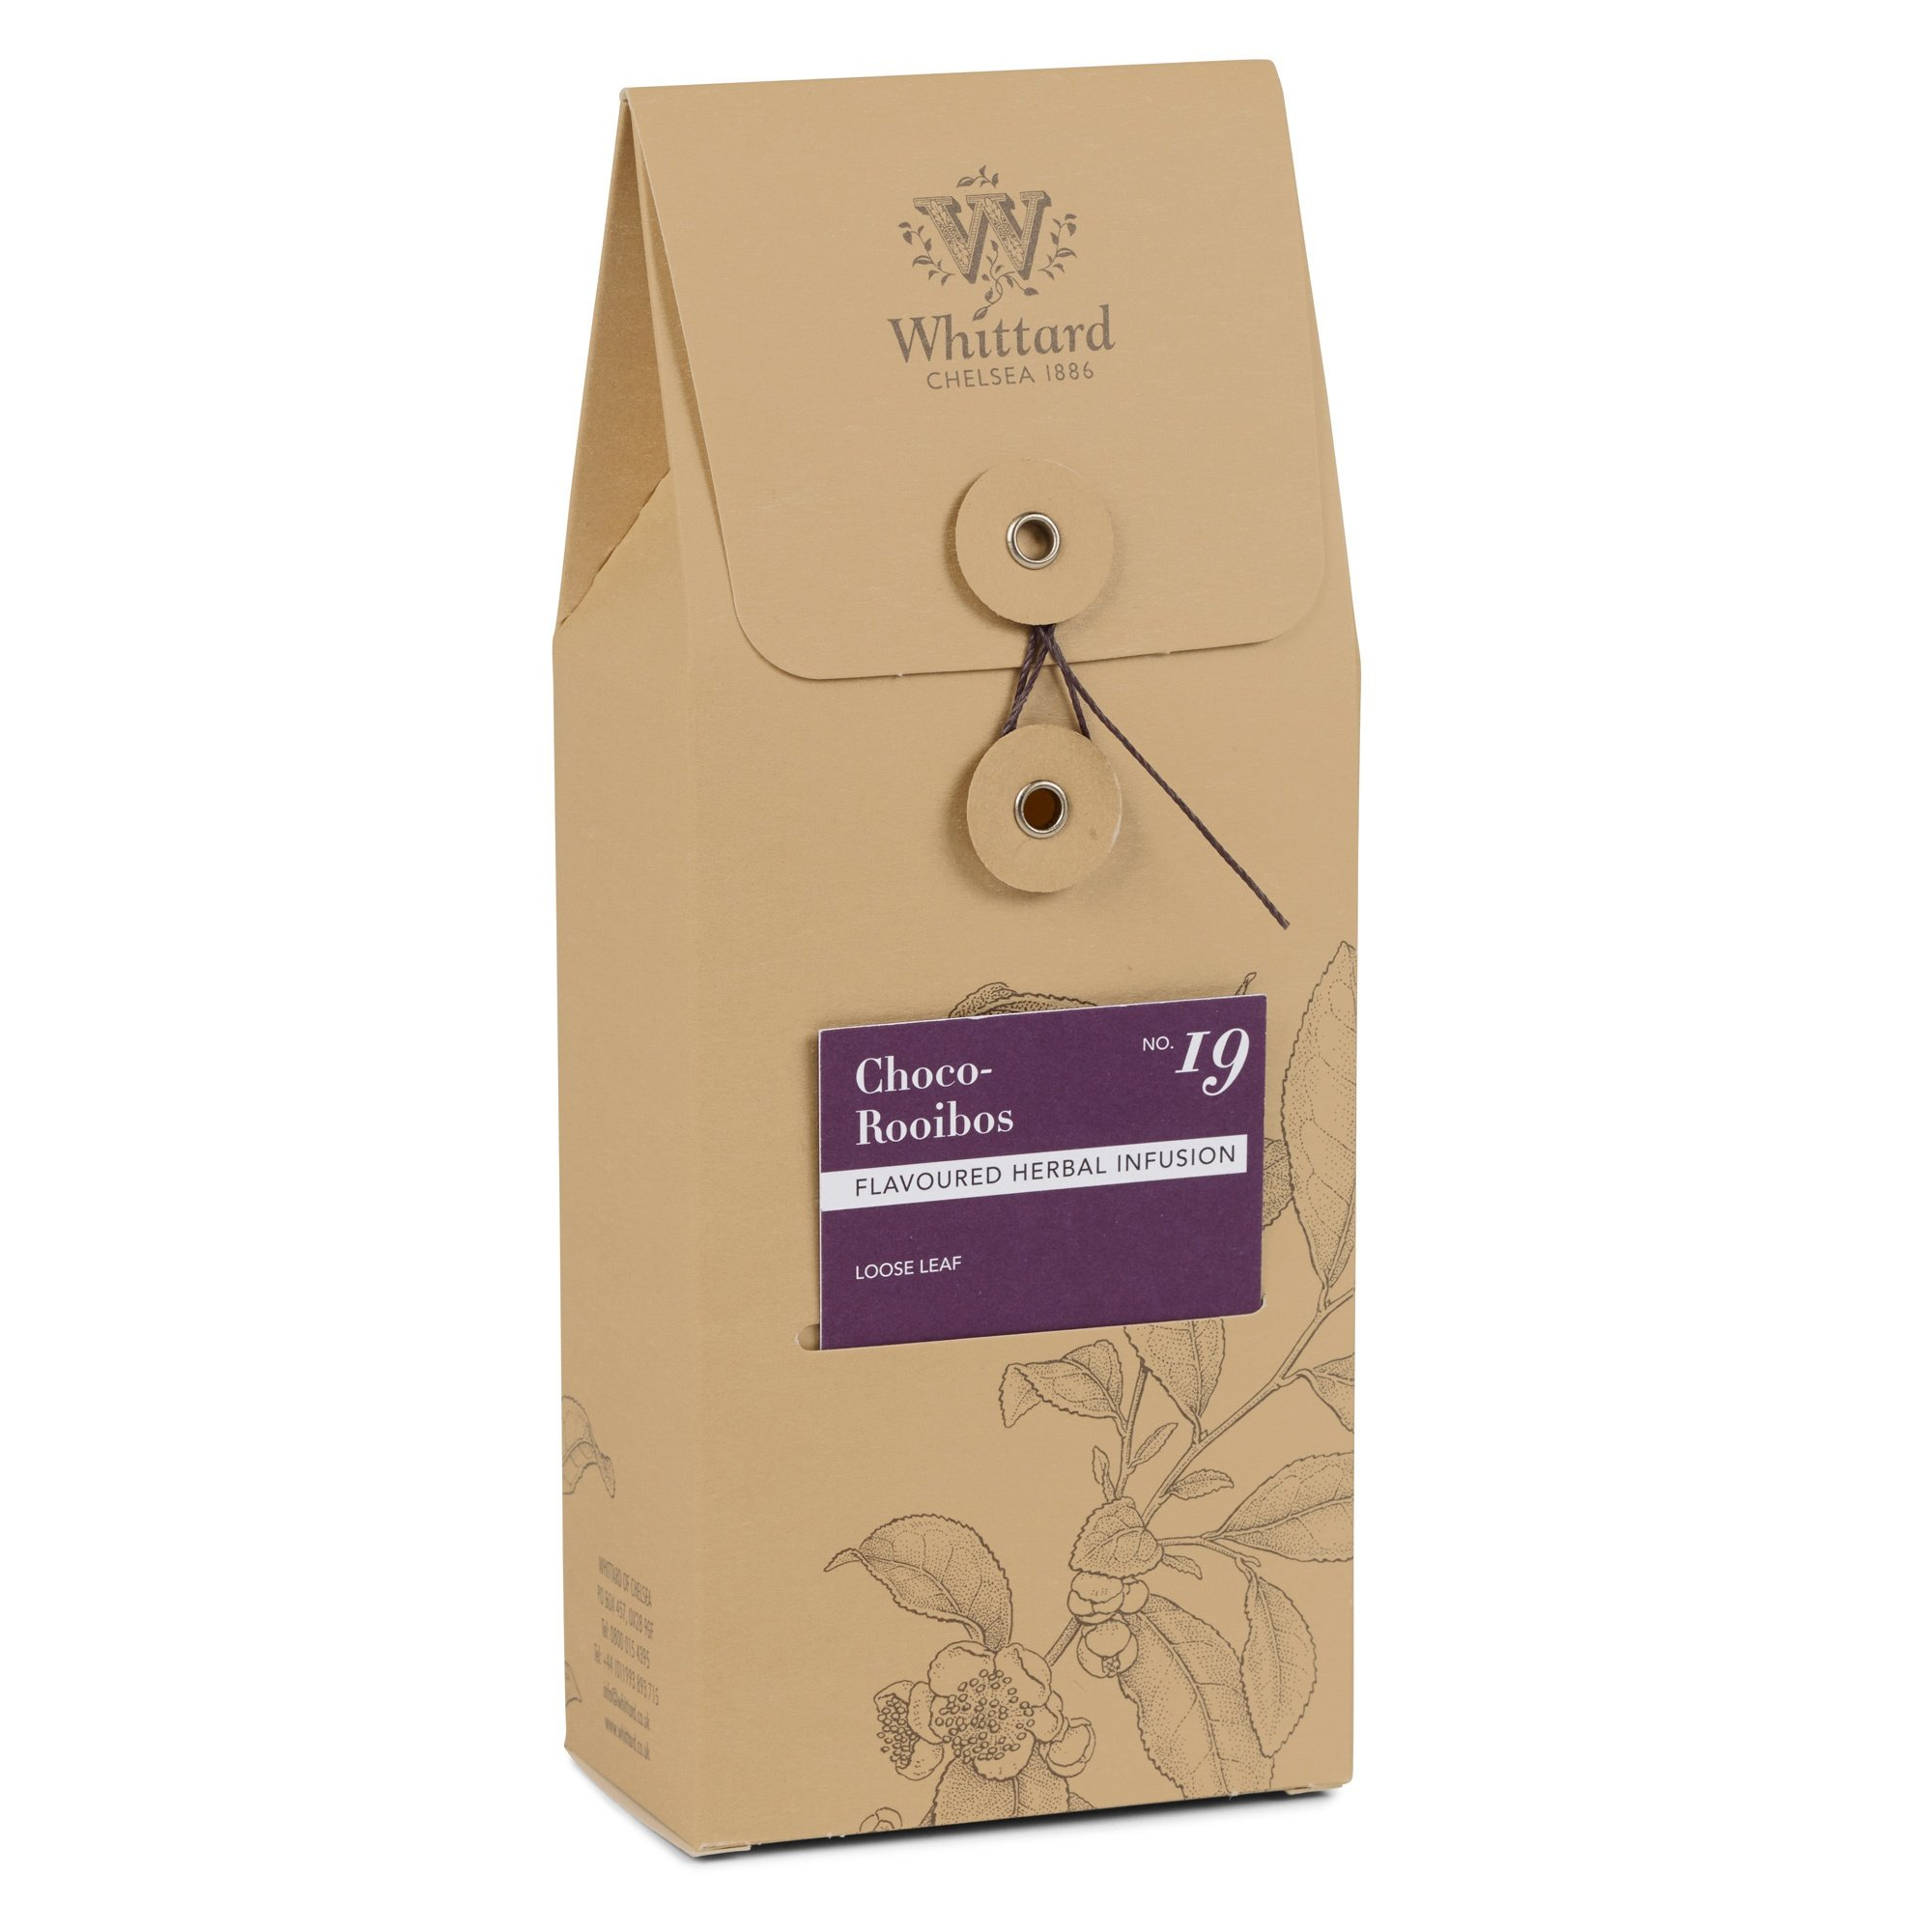 Whittard Tea Choco-Rooibos Loose Leaf 100g